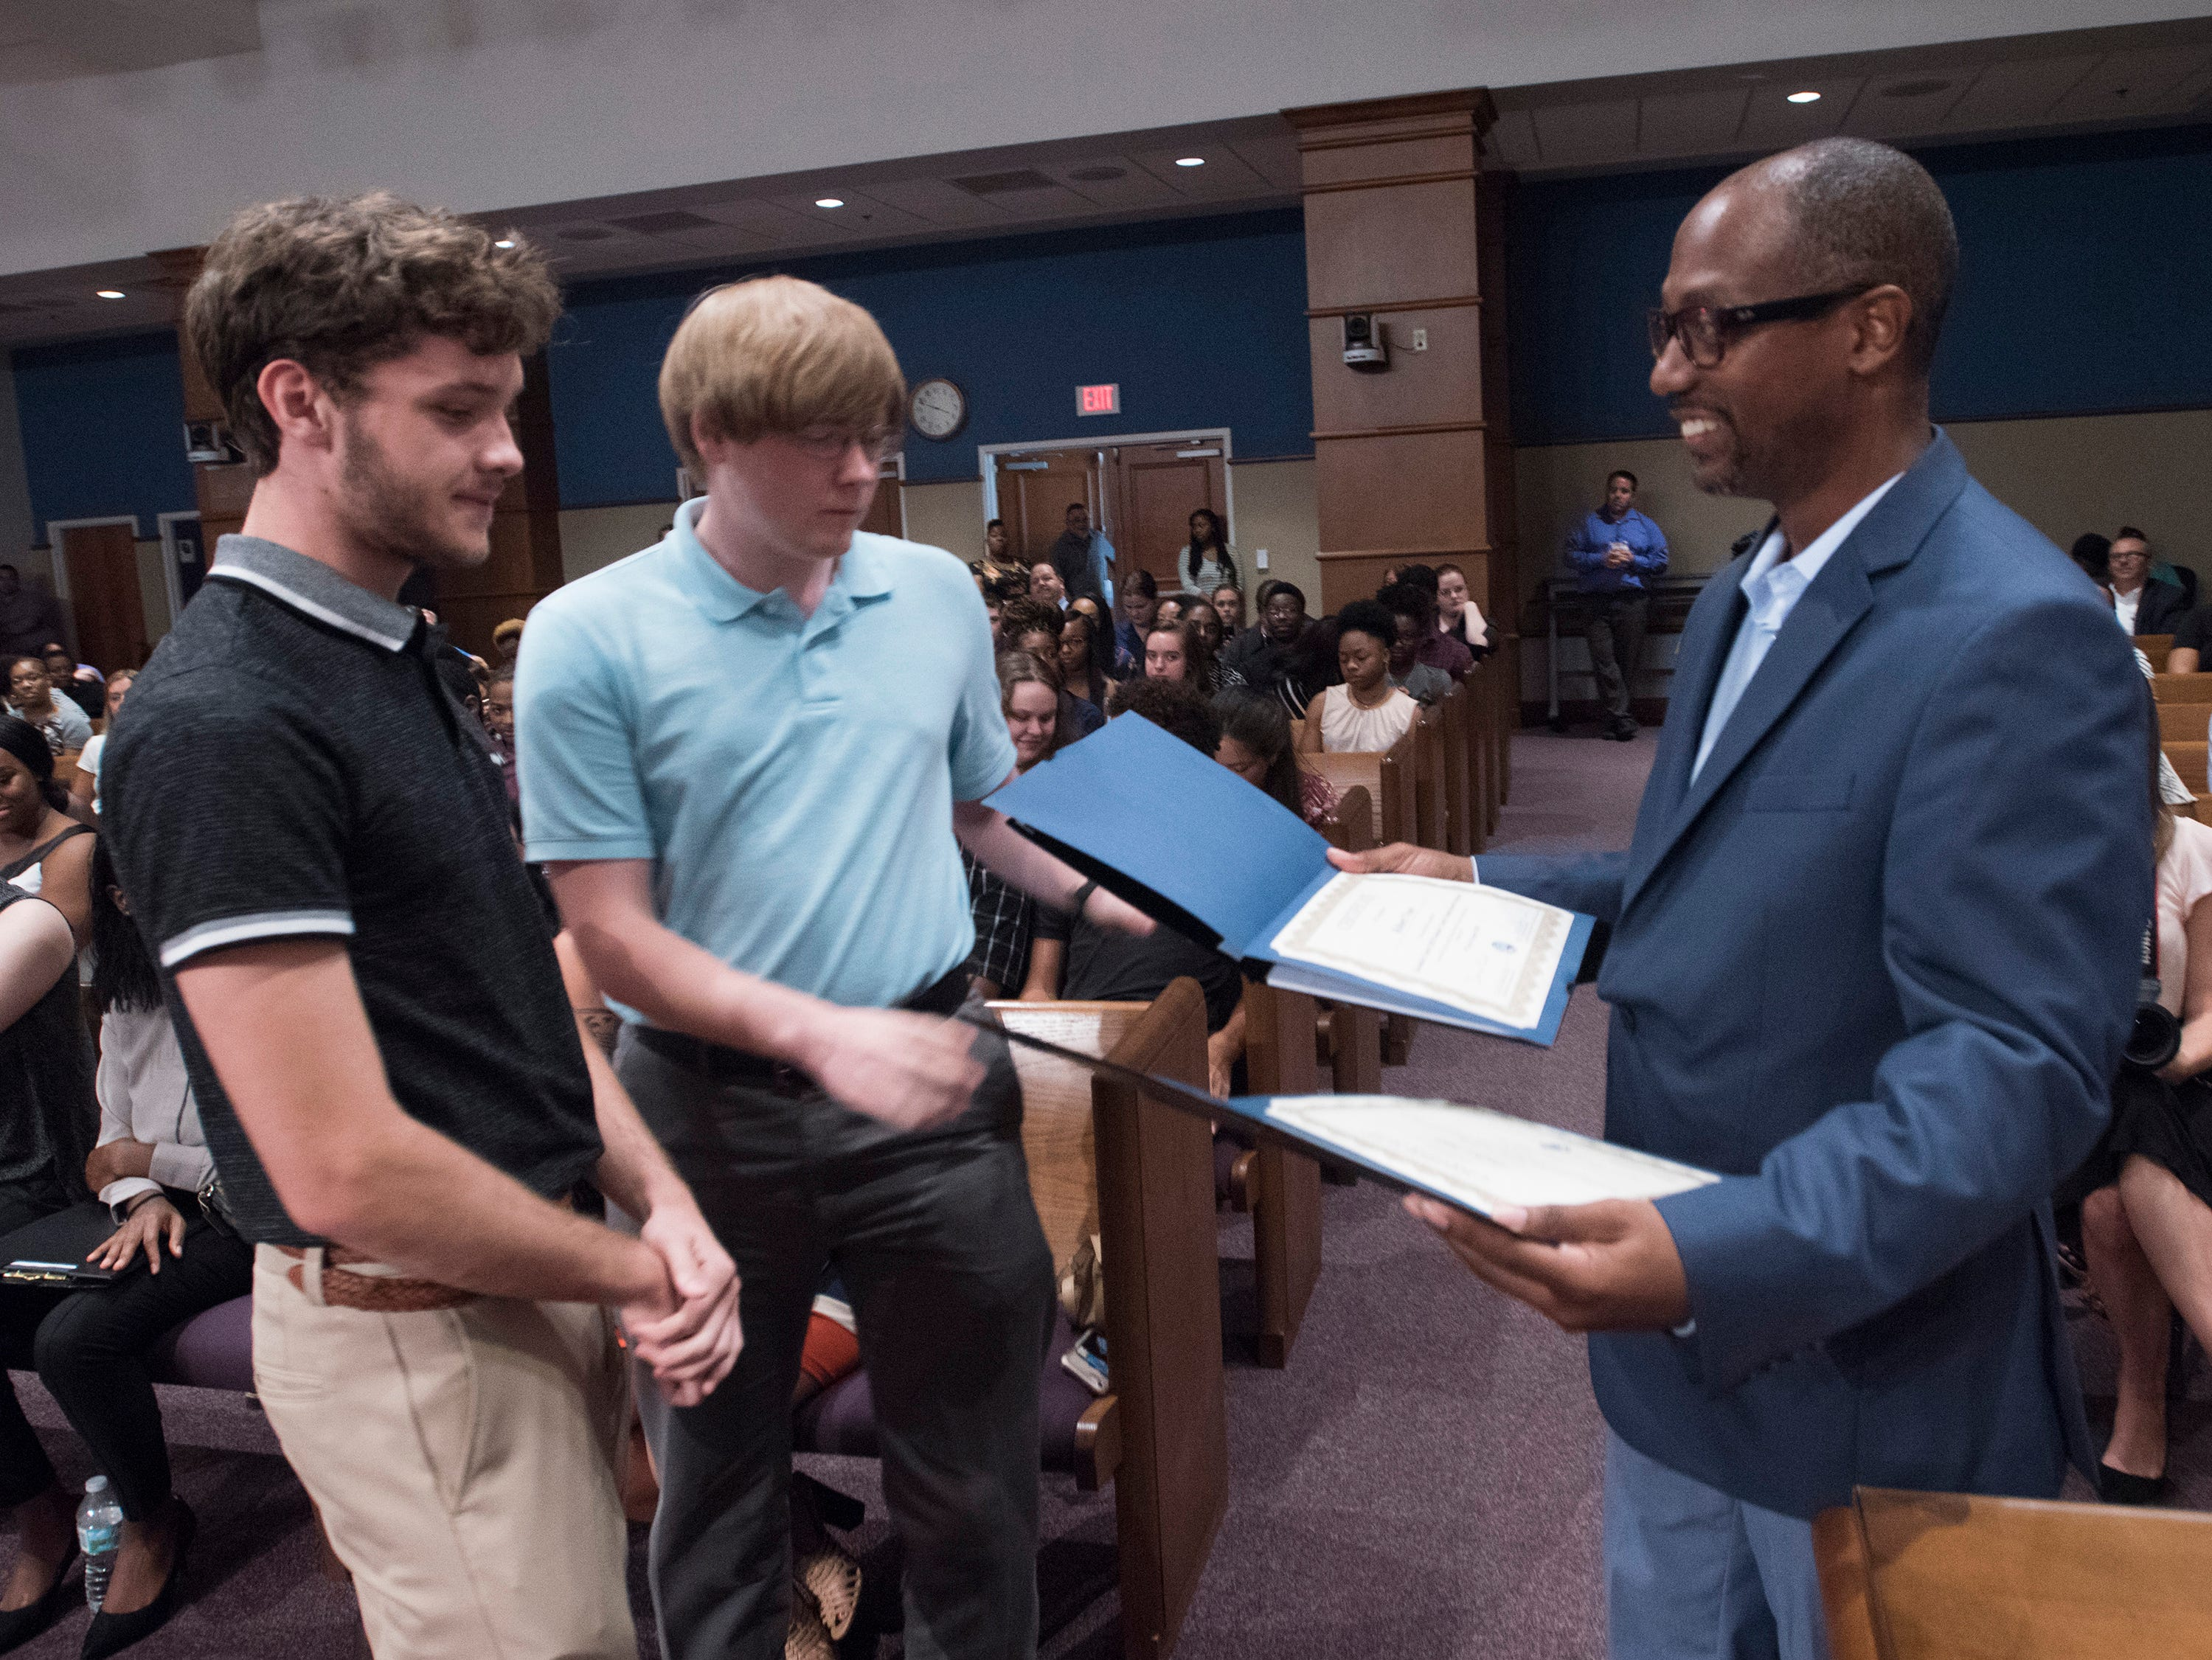 Escambia County Commissioner, Lumon May, presents, Robert Vose and Tucker Hall with certificates of completion during a ceremony in the commission chambers, Thursday, Aug. 9, 2018, to recognize the work of student interns.